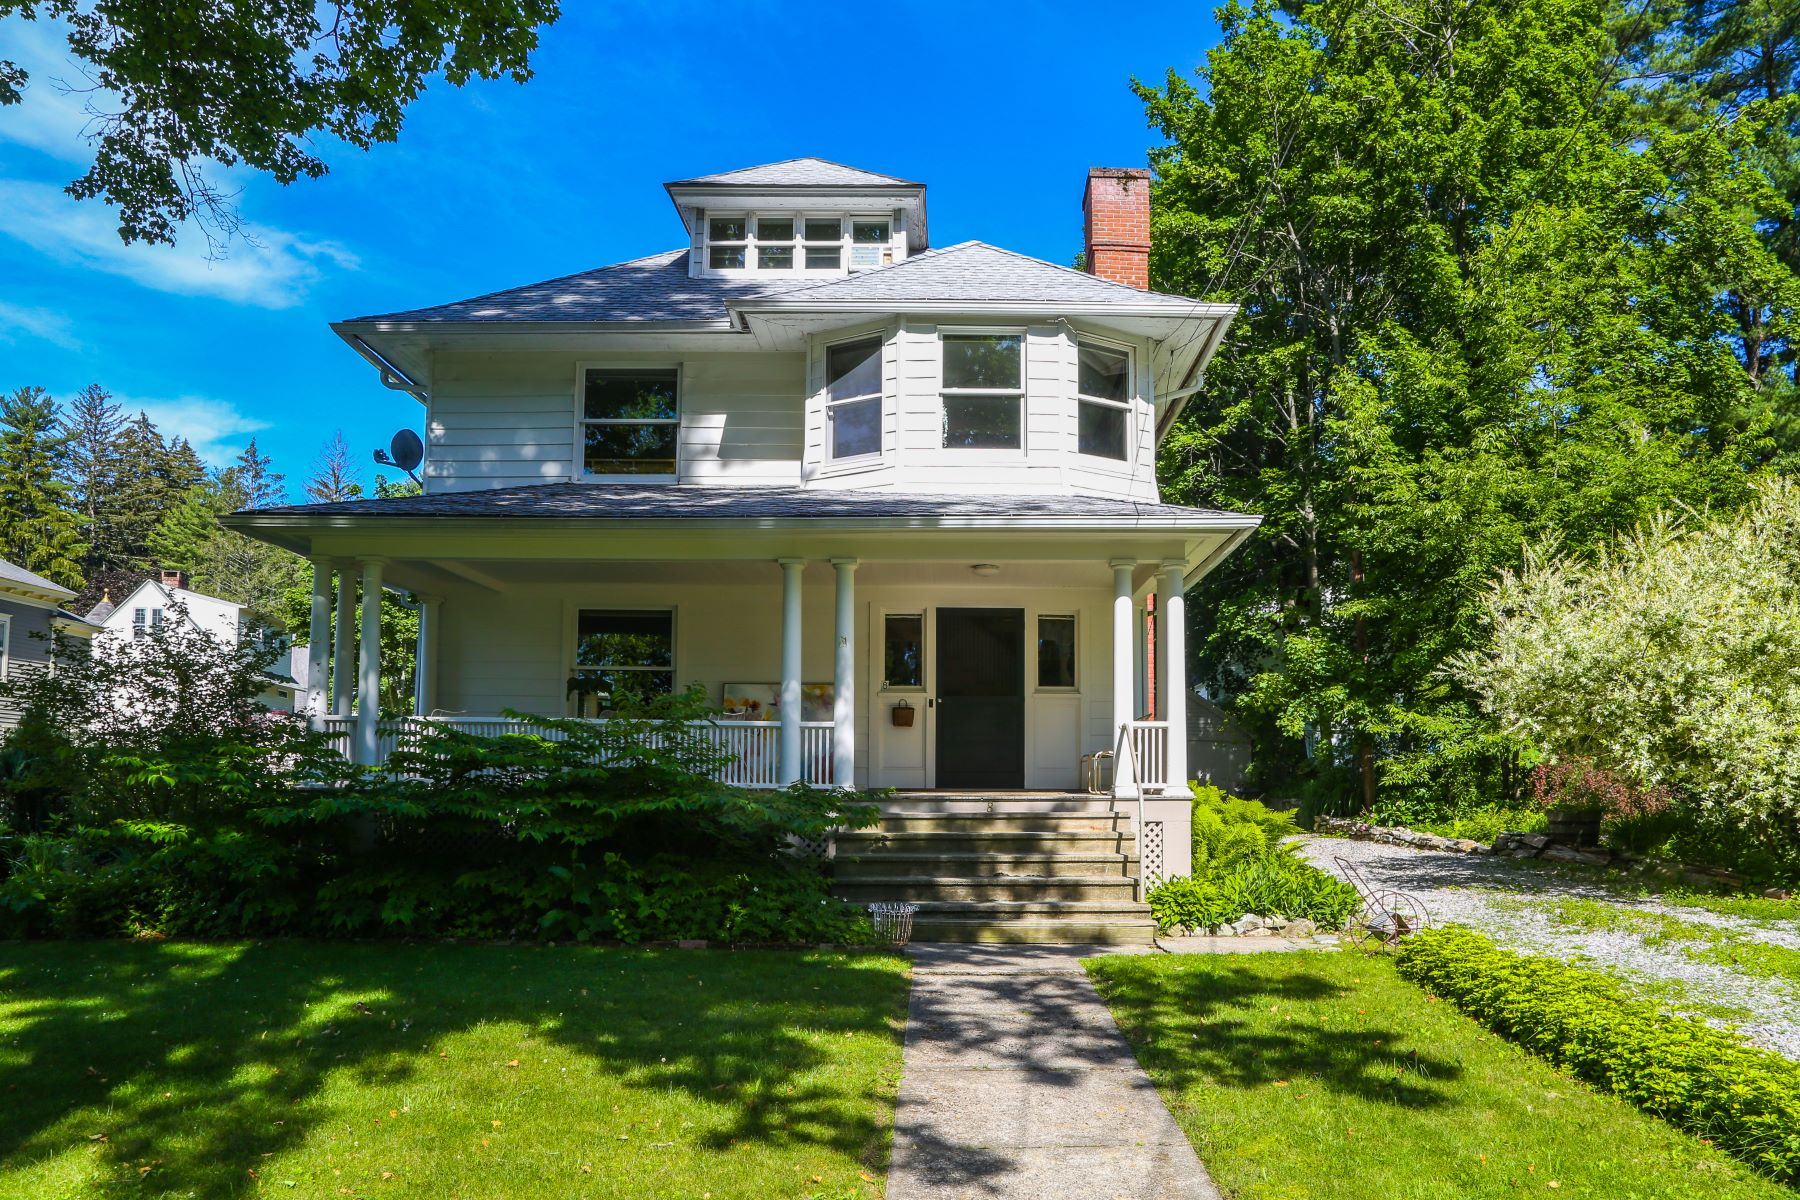 Casa Unifamiliar por un Venta en Beautifully Maintained American Foursquare on The Hill 8 Oak St Great Barrington, Massachusetts 01230 Estados Unidos